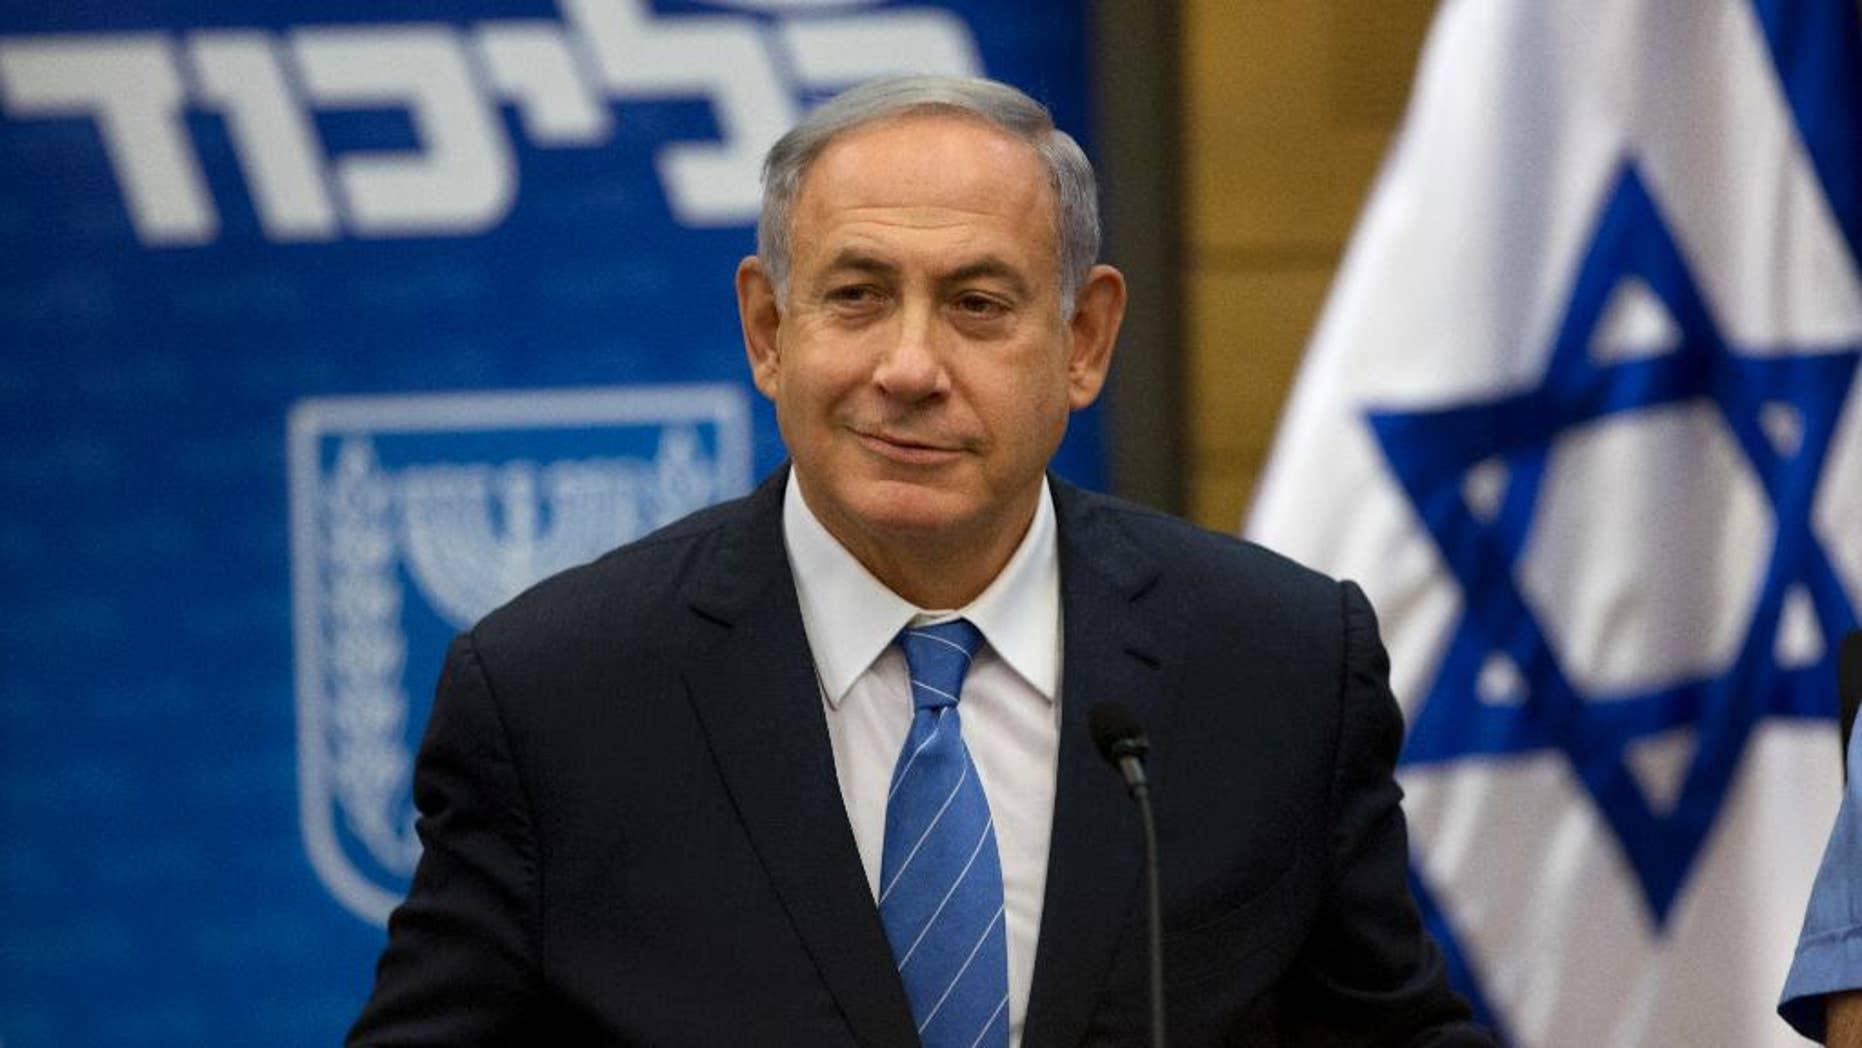 FILE - In this Monday, May 23, 2016 file photo, Israeli Prime Minister Benjamin Netanyahu, looks on during a faction meeting at the Knesset, Israel's parliament in Jerusalem. Israeli Prime Minister Benjamin Netanyahu spent more than $600,000 of public funds on a six-day trip to New York, including $1,600 on a personal hairdresser, according to a newly released expense report. (AP Photo/Sebastian Scheiner)